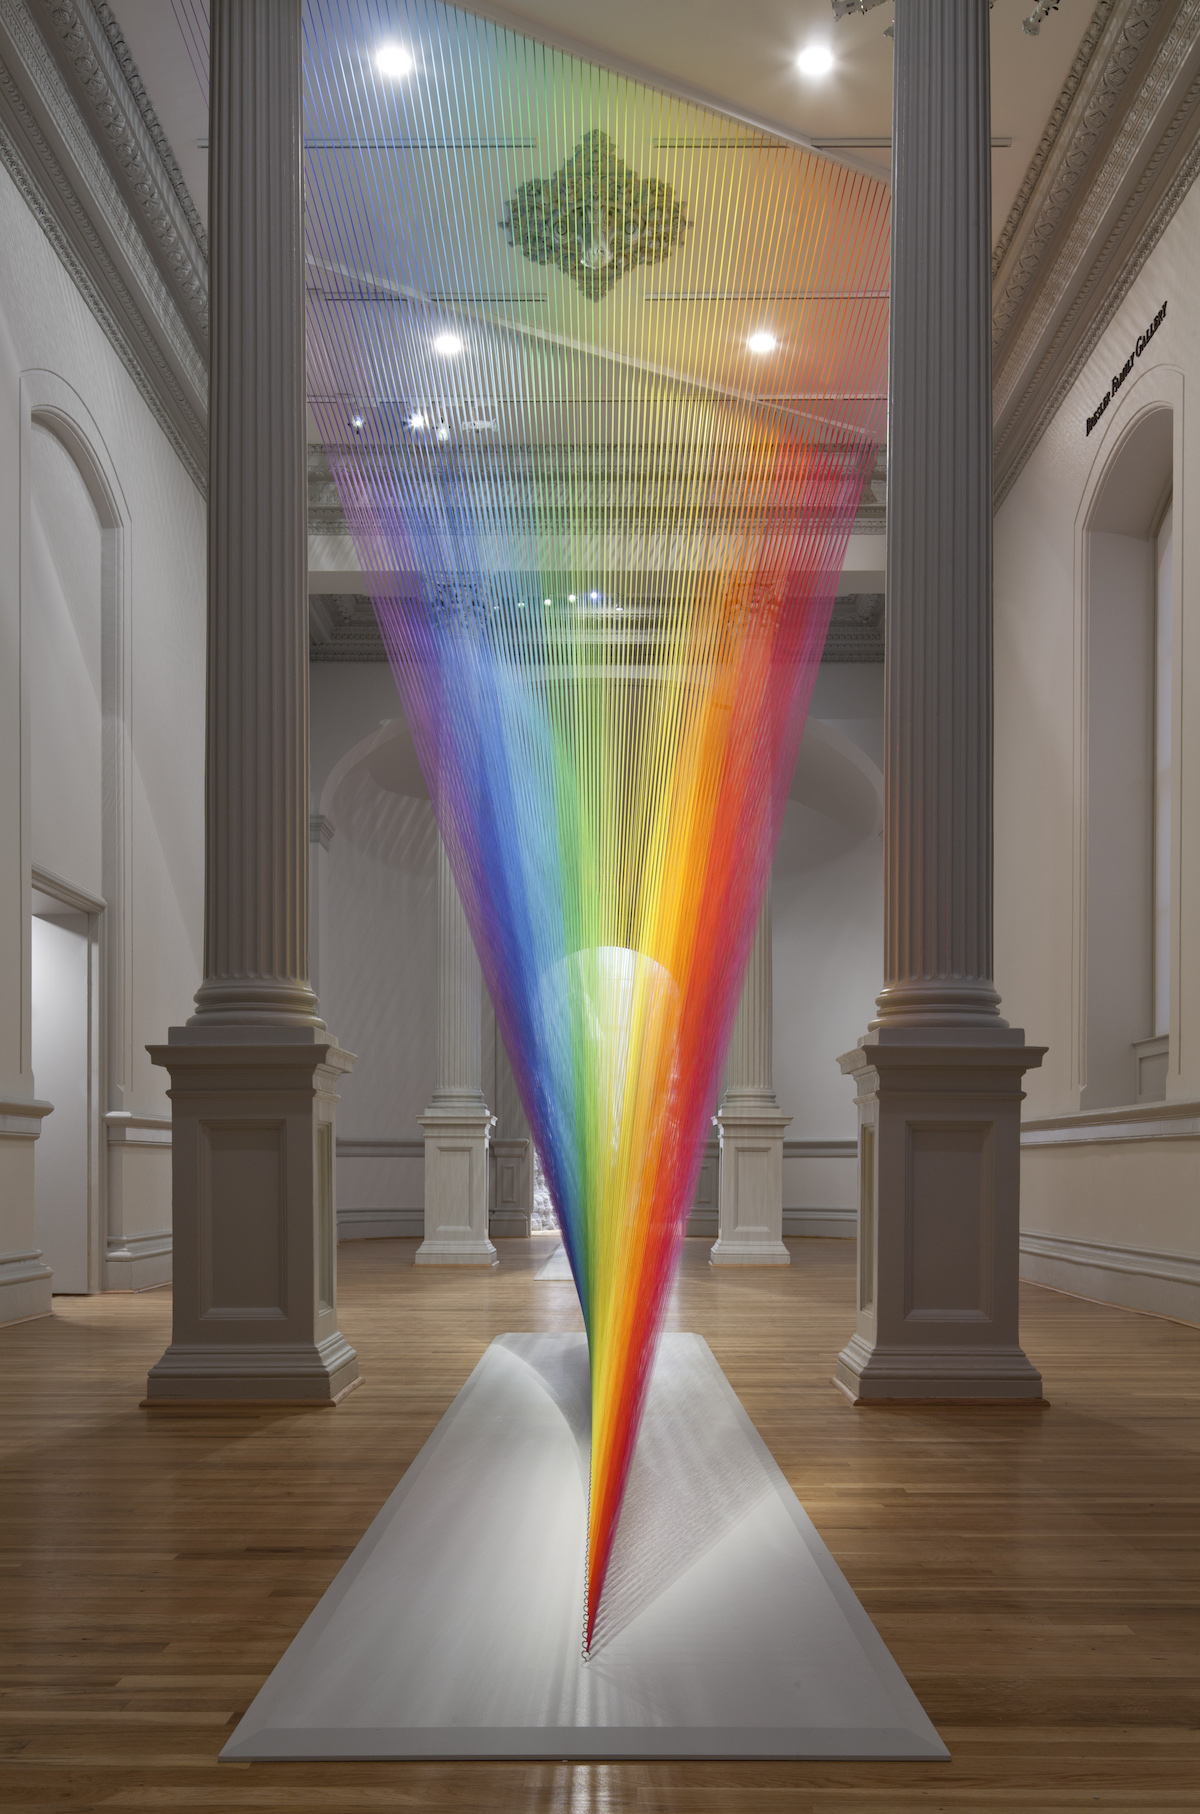 Mexican artist Gabriel Dawe thread art installations